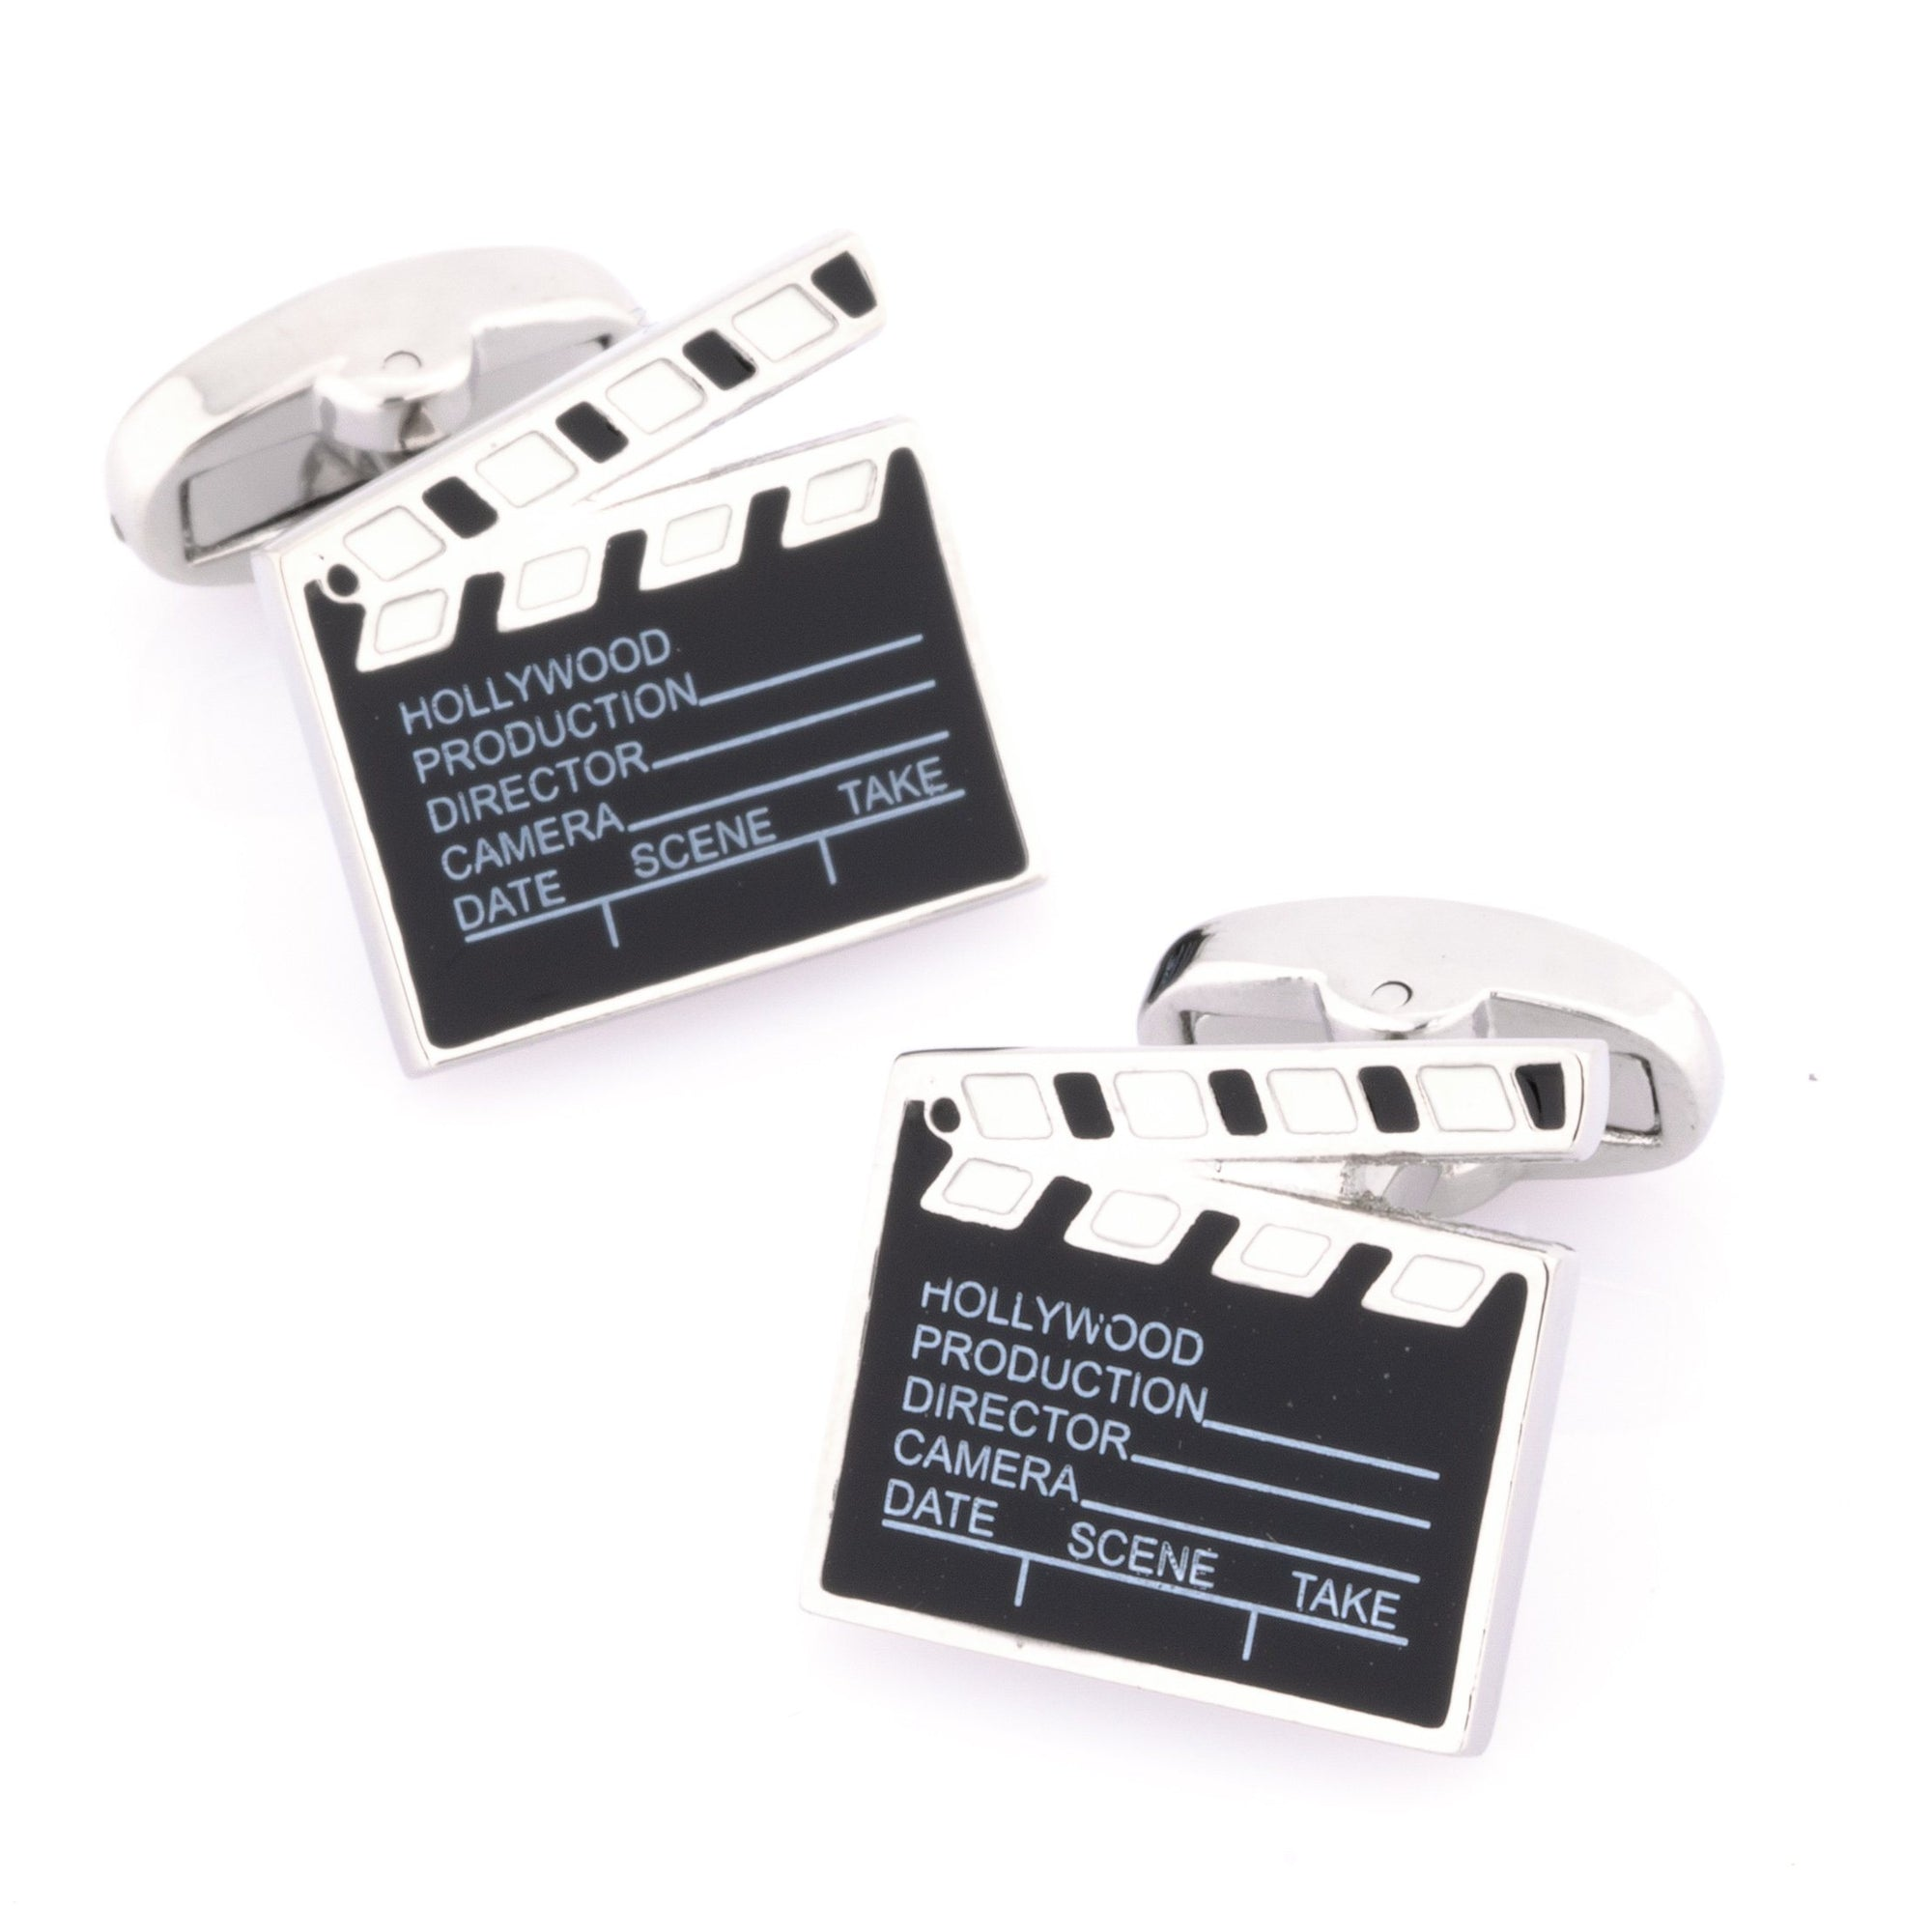 Hollywood Clapper Board Movie Cufflinks Novelty Cufflinks Clinks Australia Hollywood Clapper Board Movie Cufflinks